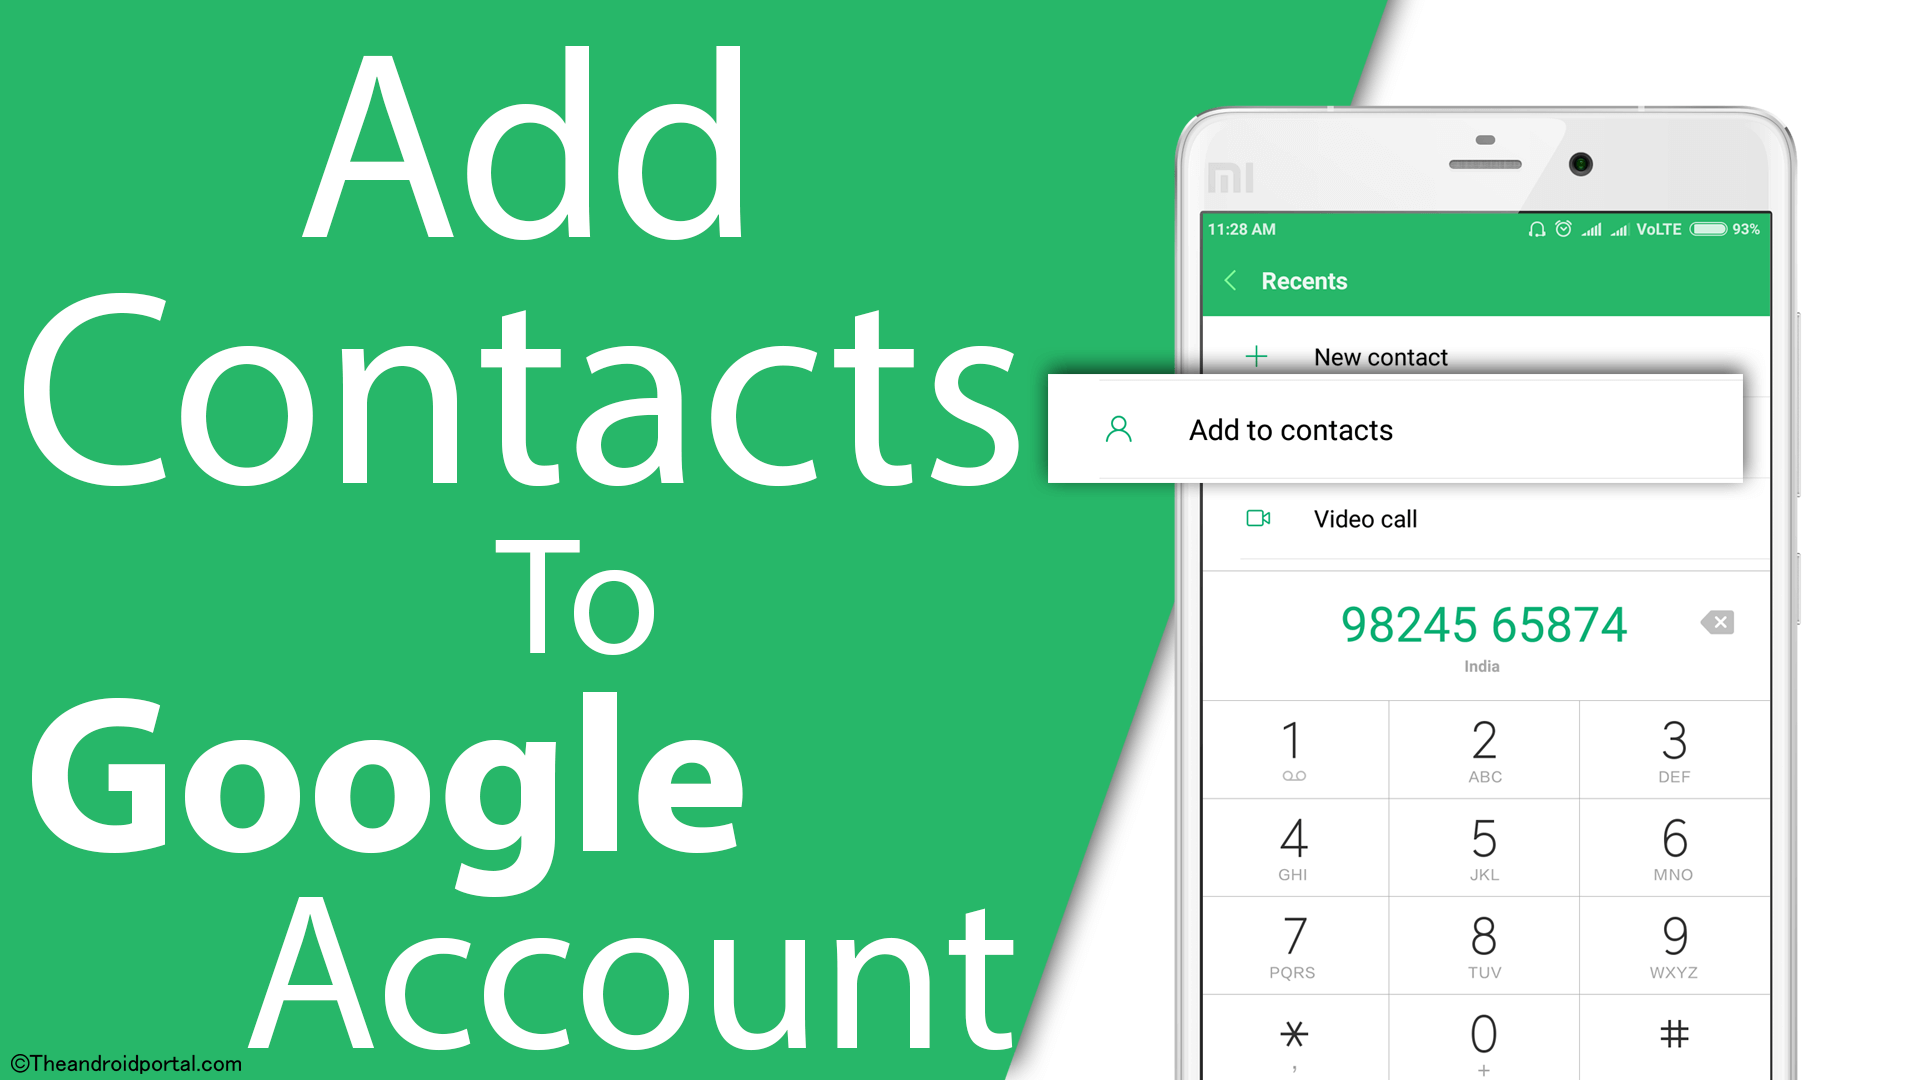 How to Add contacts in Google Account on Android Smartphone